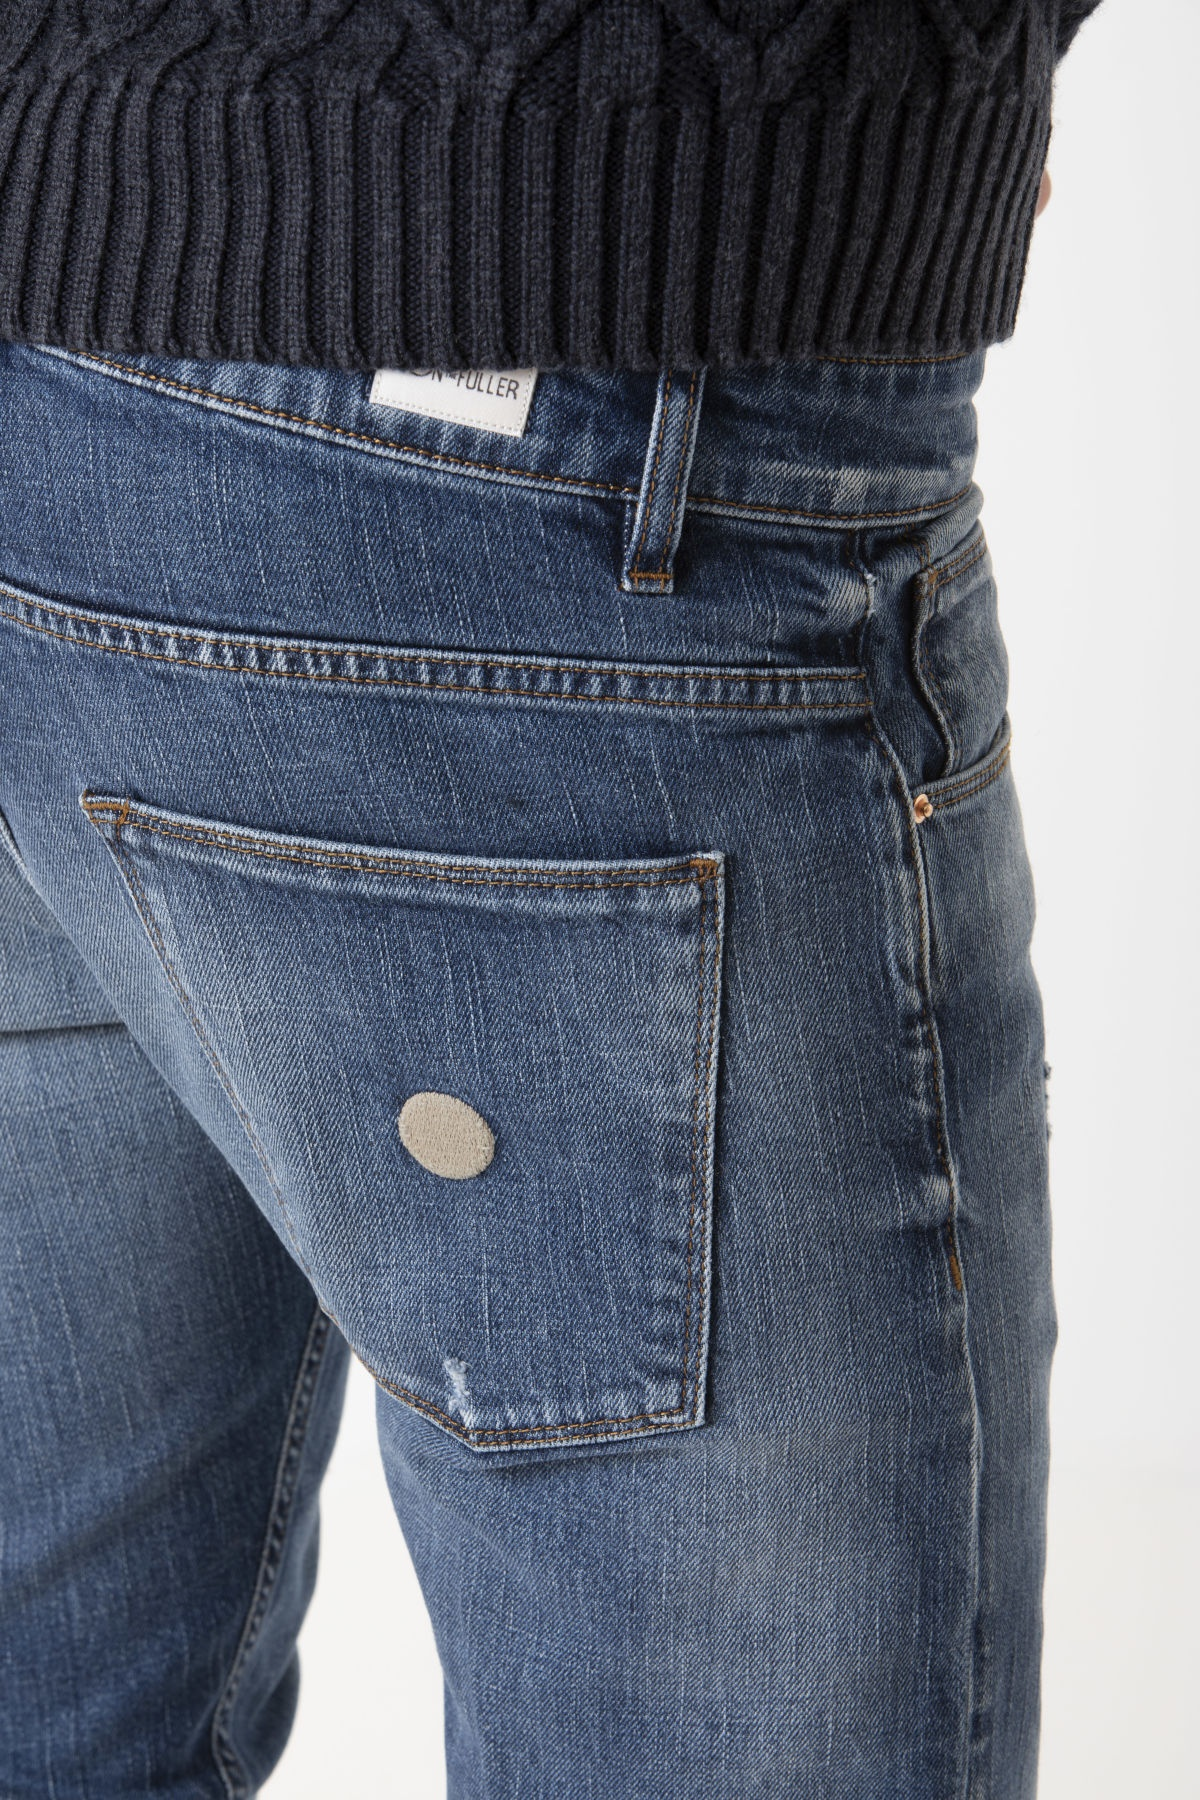 Jeans per uomo DON THE FULLER SANFRANCISCO A/I 19-20